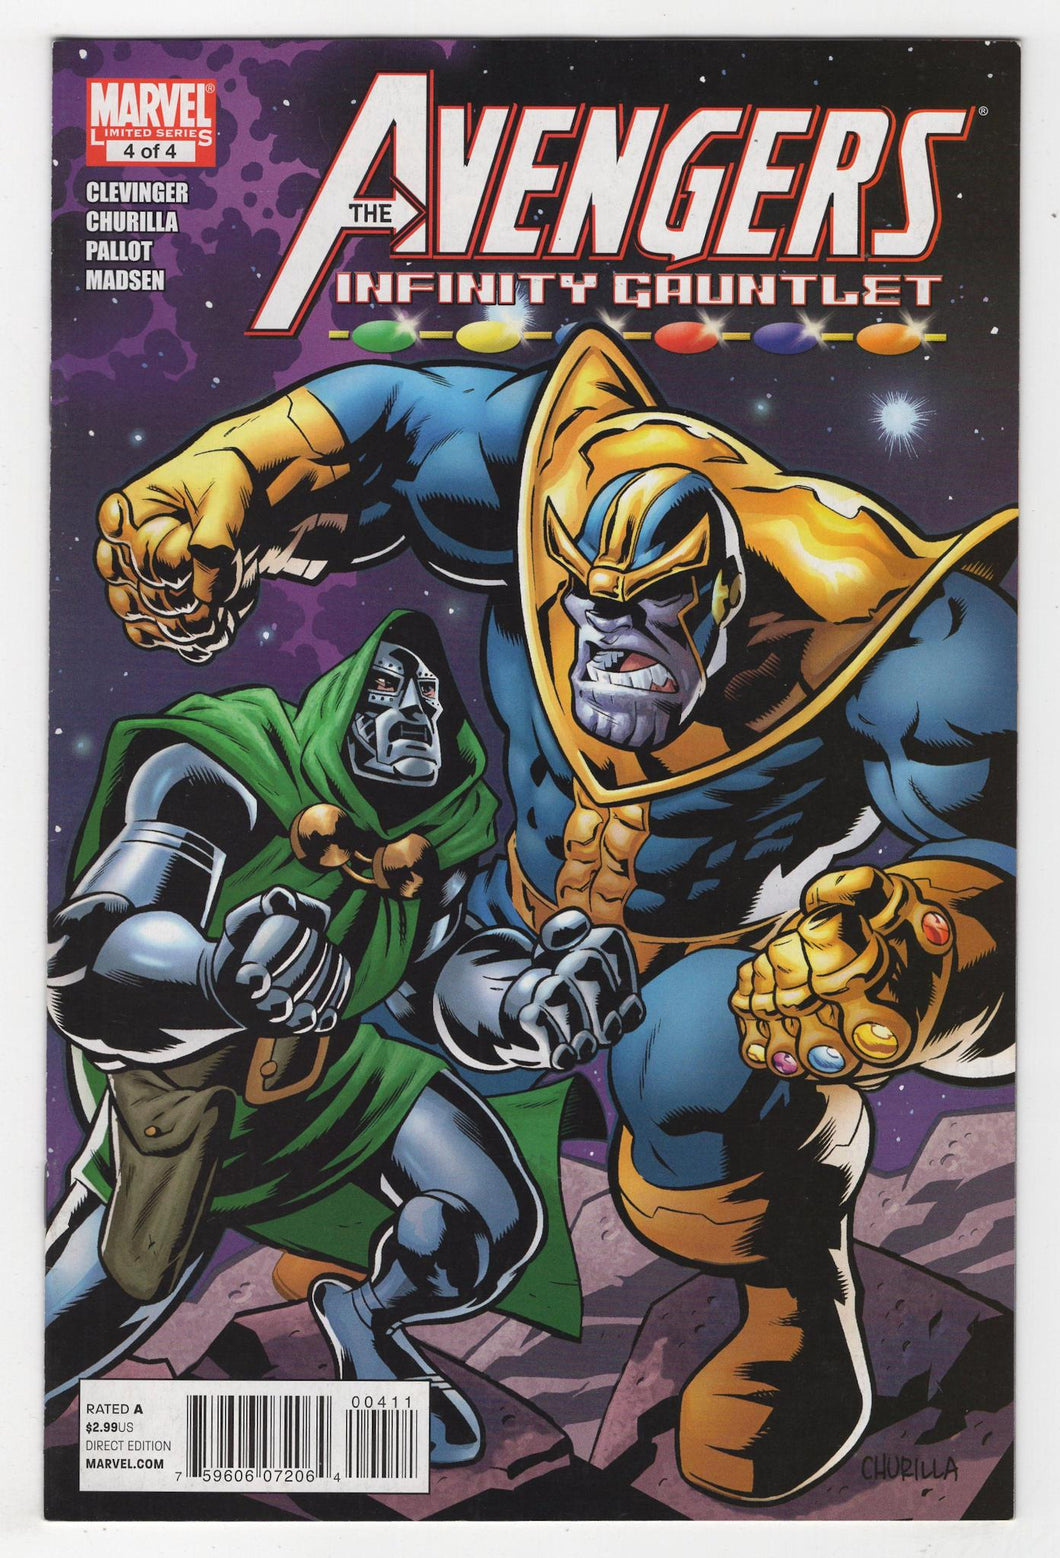 Avengers and the Infinity Gauntlet #4 Cover Front